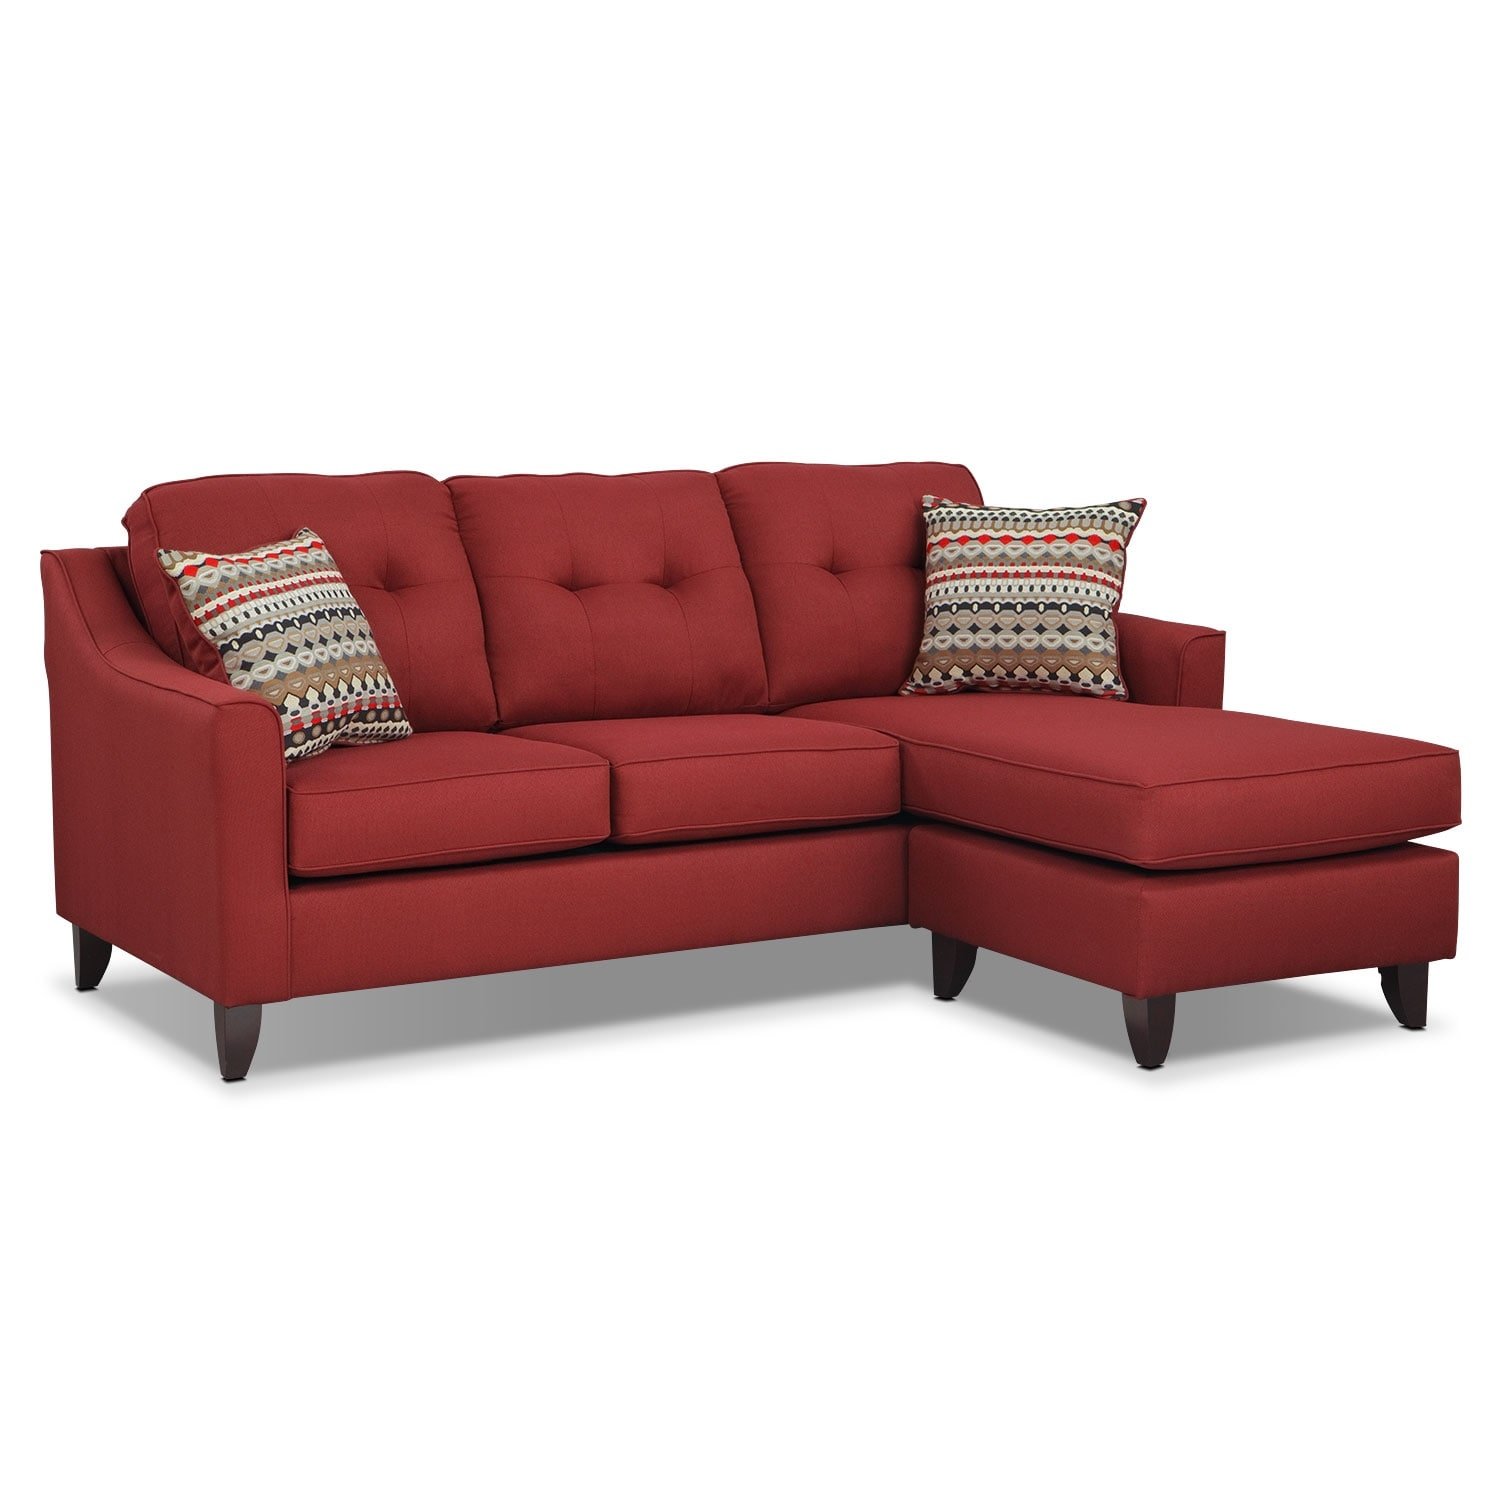 value city furniture marco chaise sofa cama walmart df red and mattresses